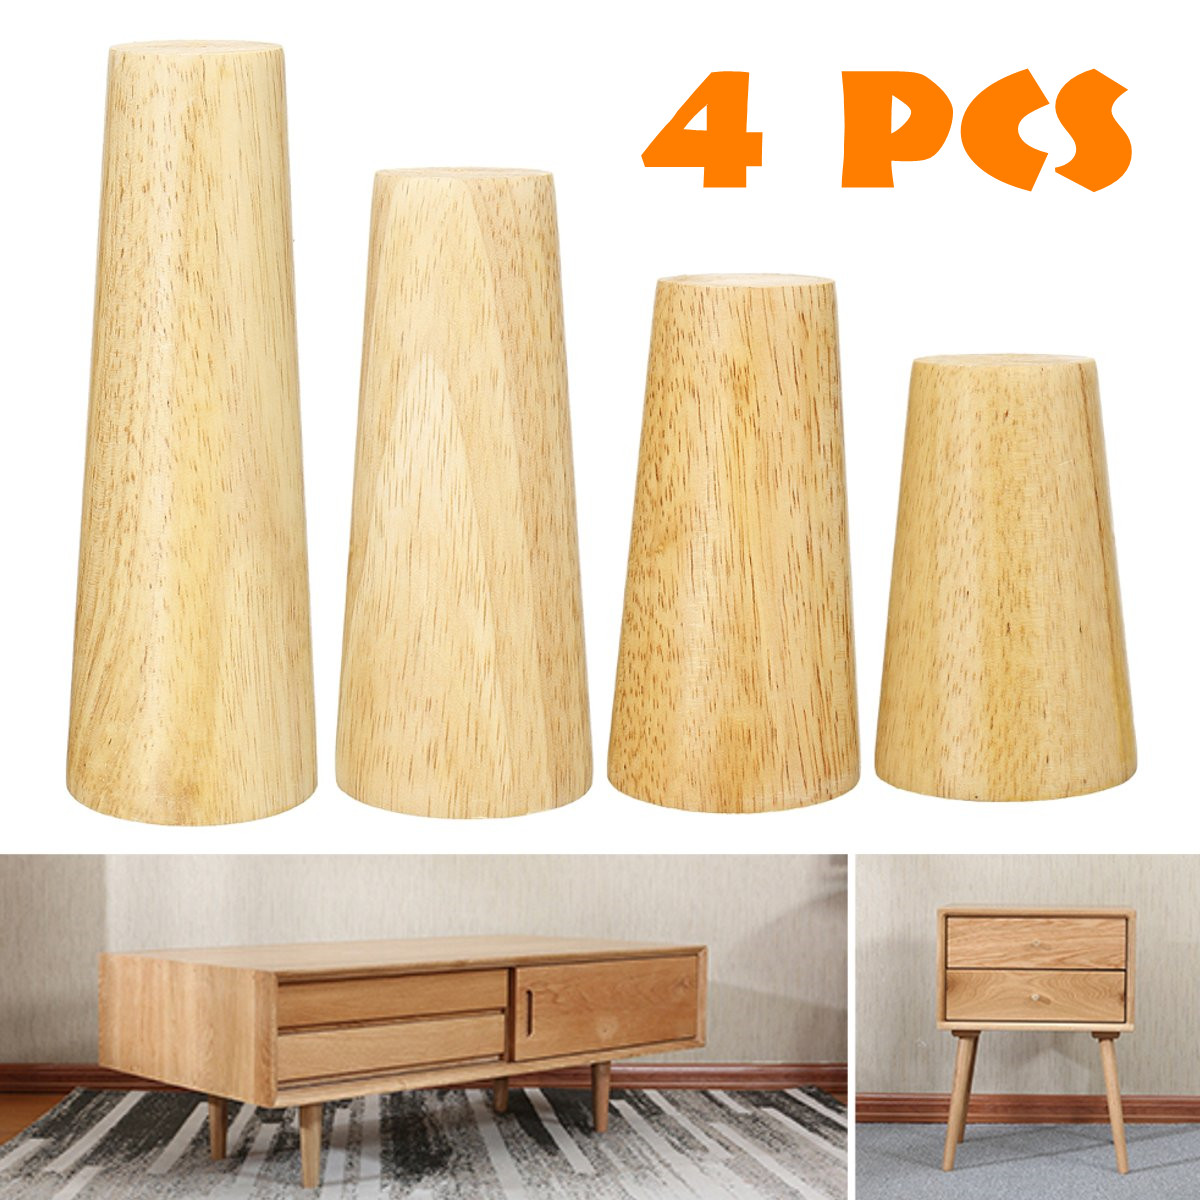 4pcs Solid Wooden Oblique Angle Sofa Legs Feet Coffee Table Furniture Legs With Anti-skid Pad Screws For Cabinets Tables 4 Size